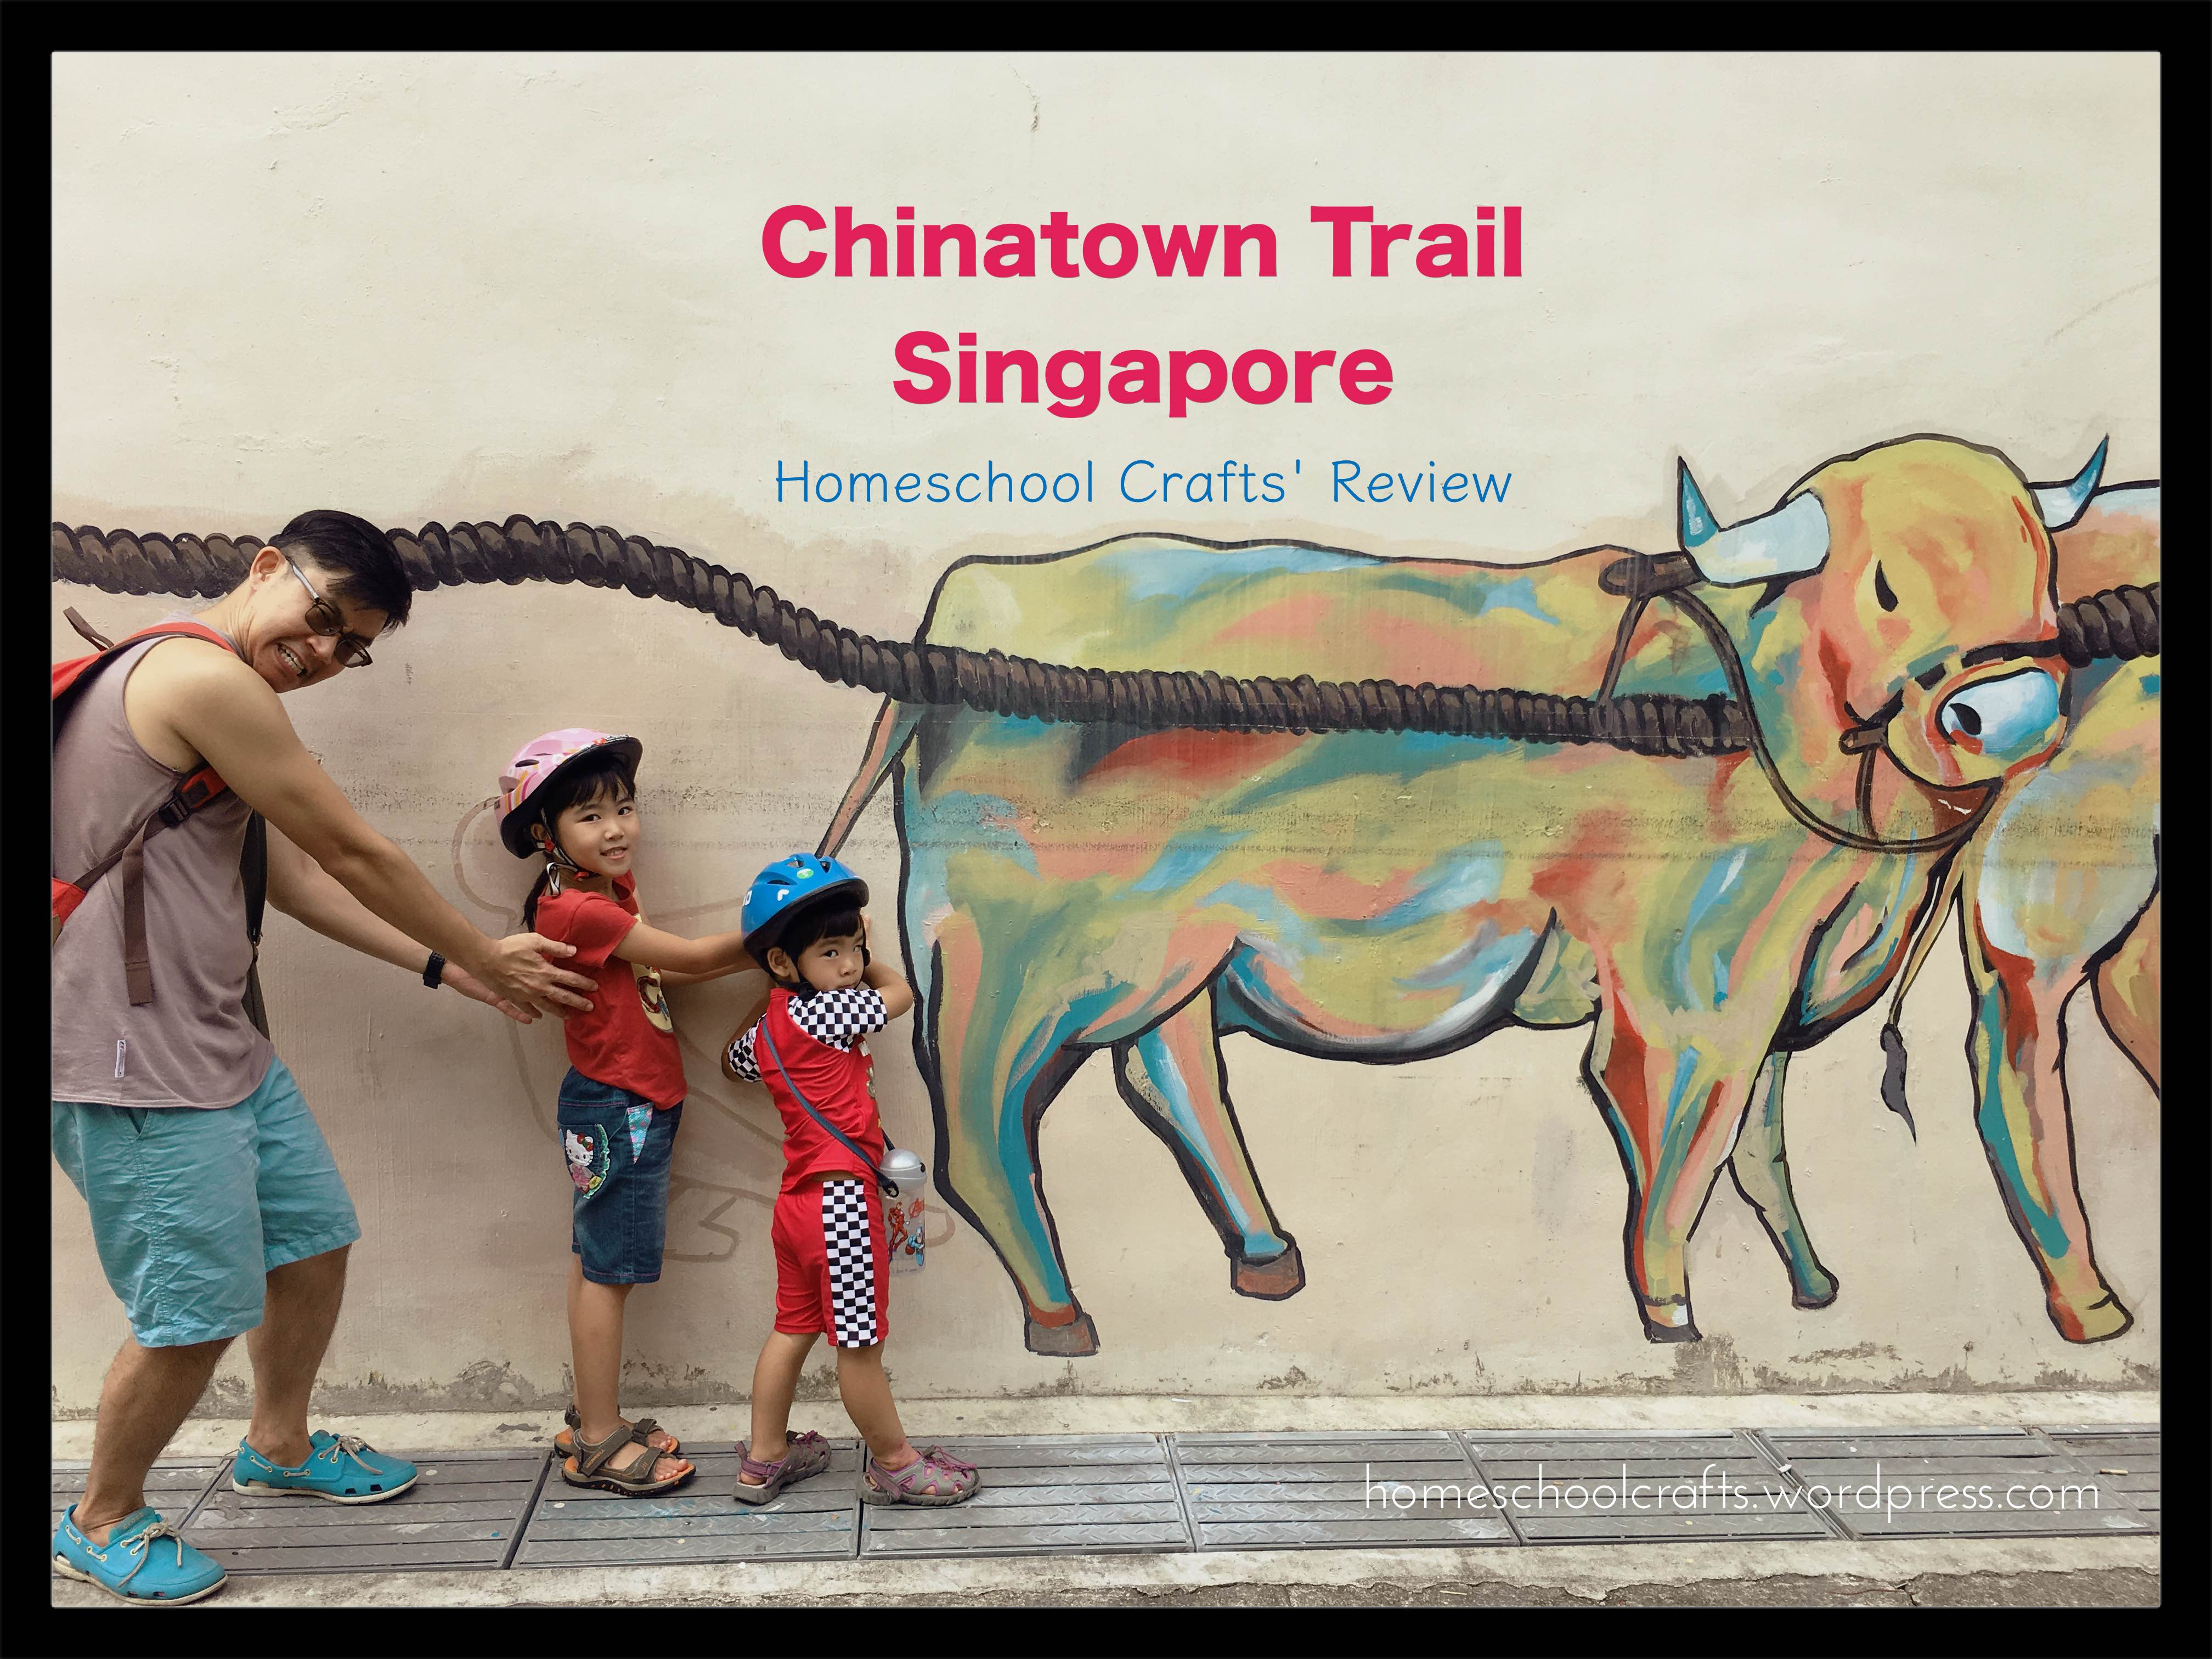 Chinatown-Trail-Singapore-Homeschool-Crafts-Review